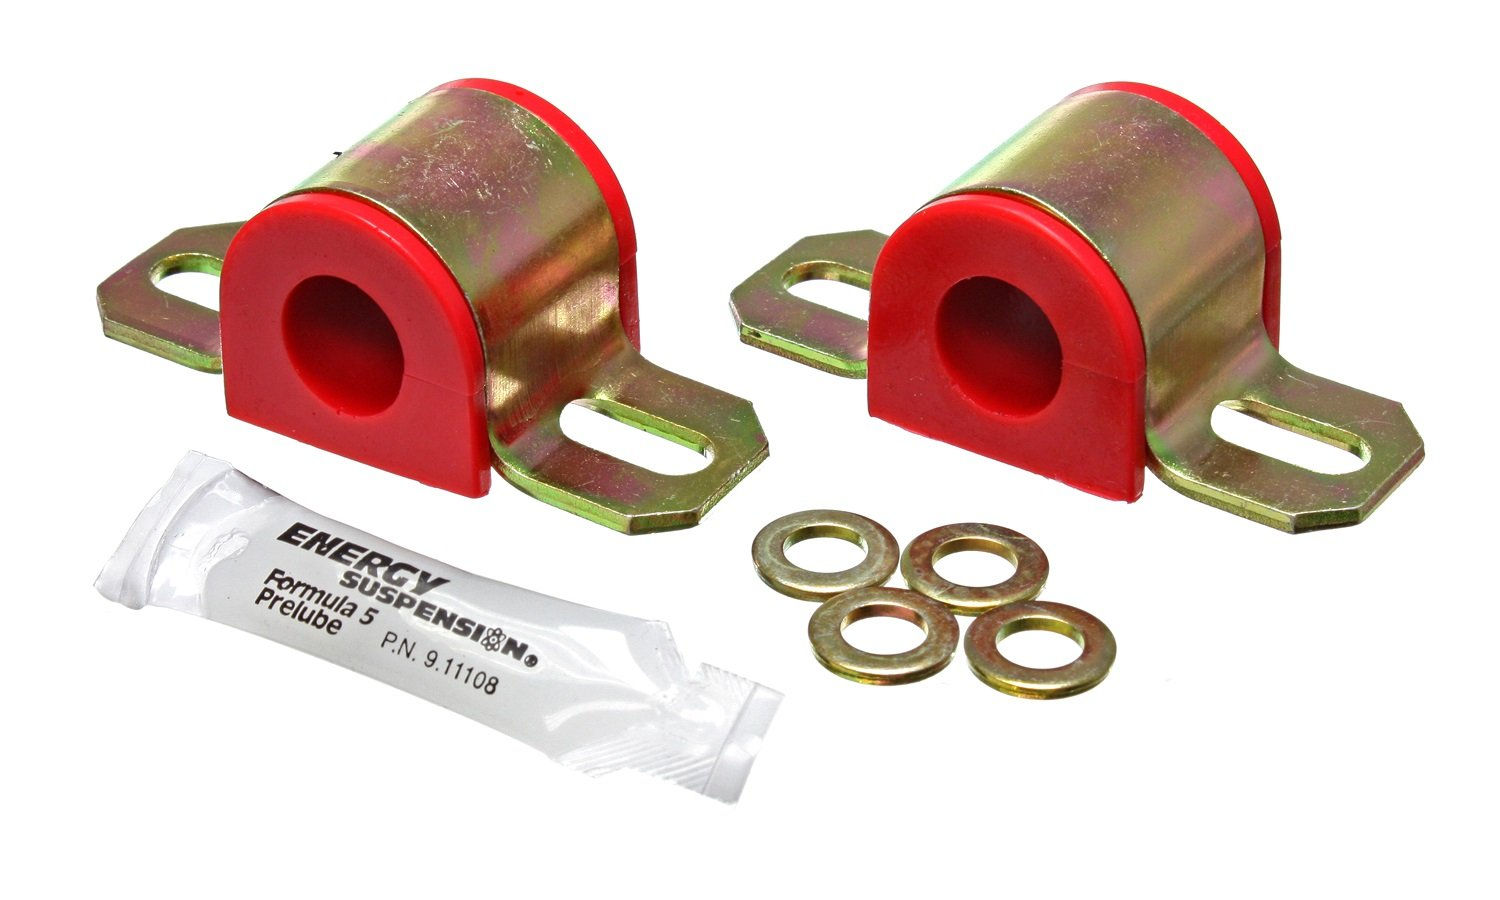 16MM SWAY BAR BUSHING SET Energy Suspension 9.5120R 5//8